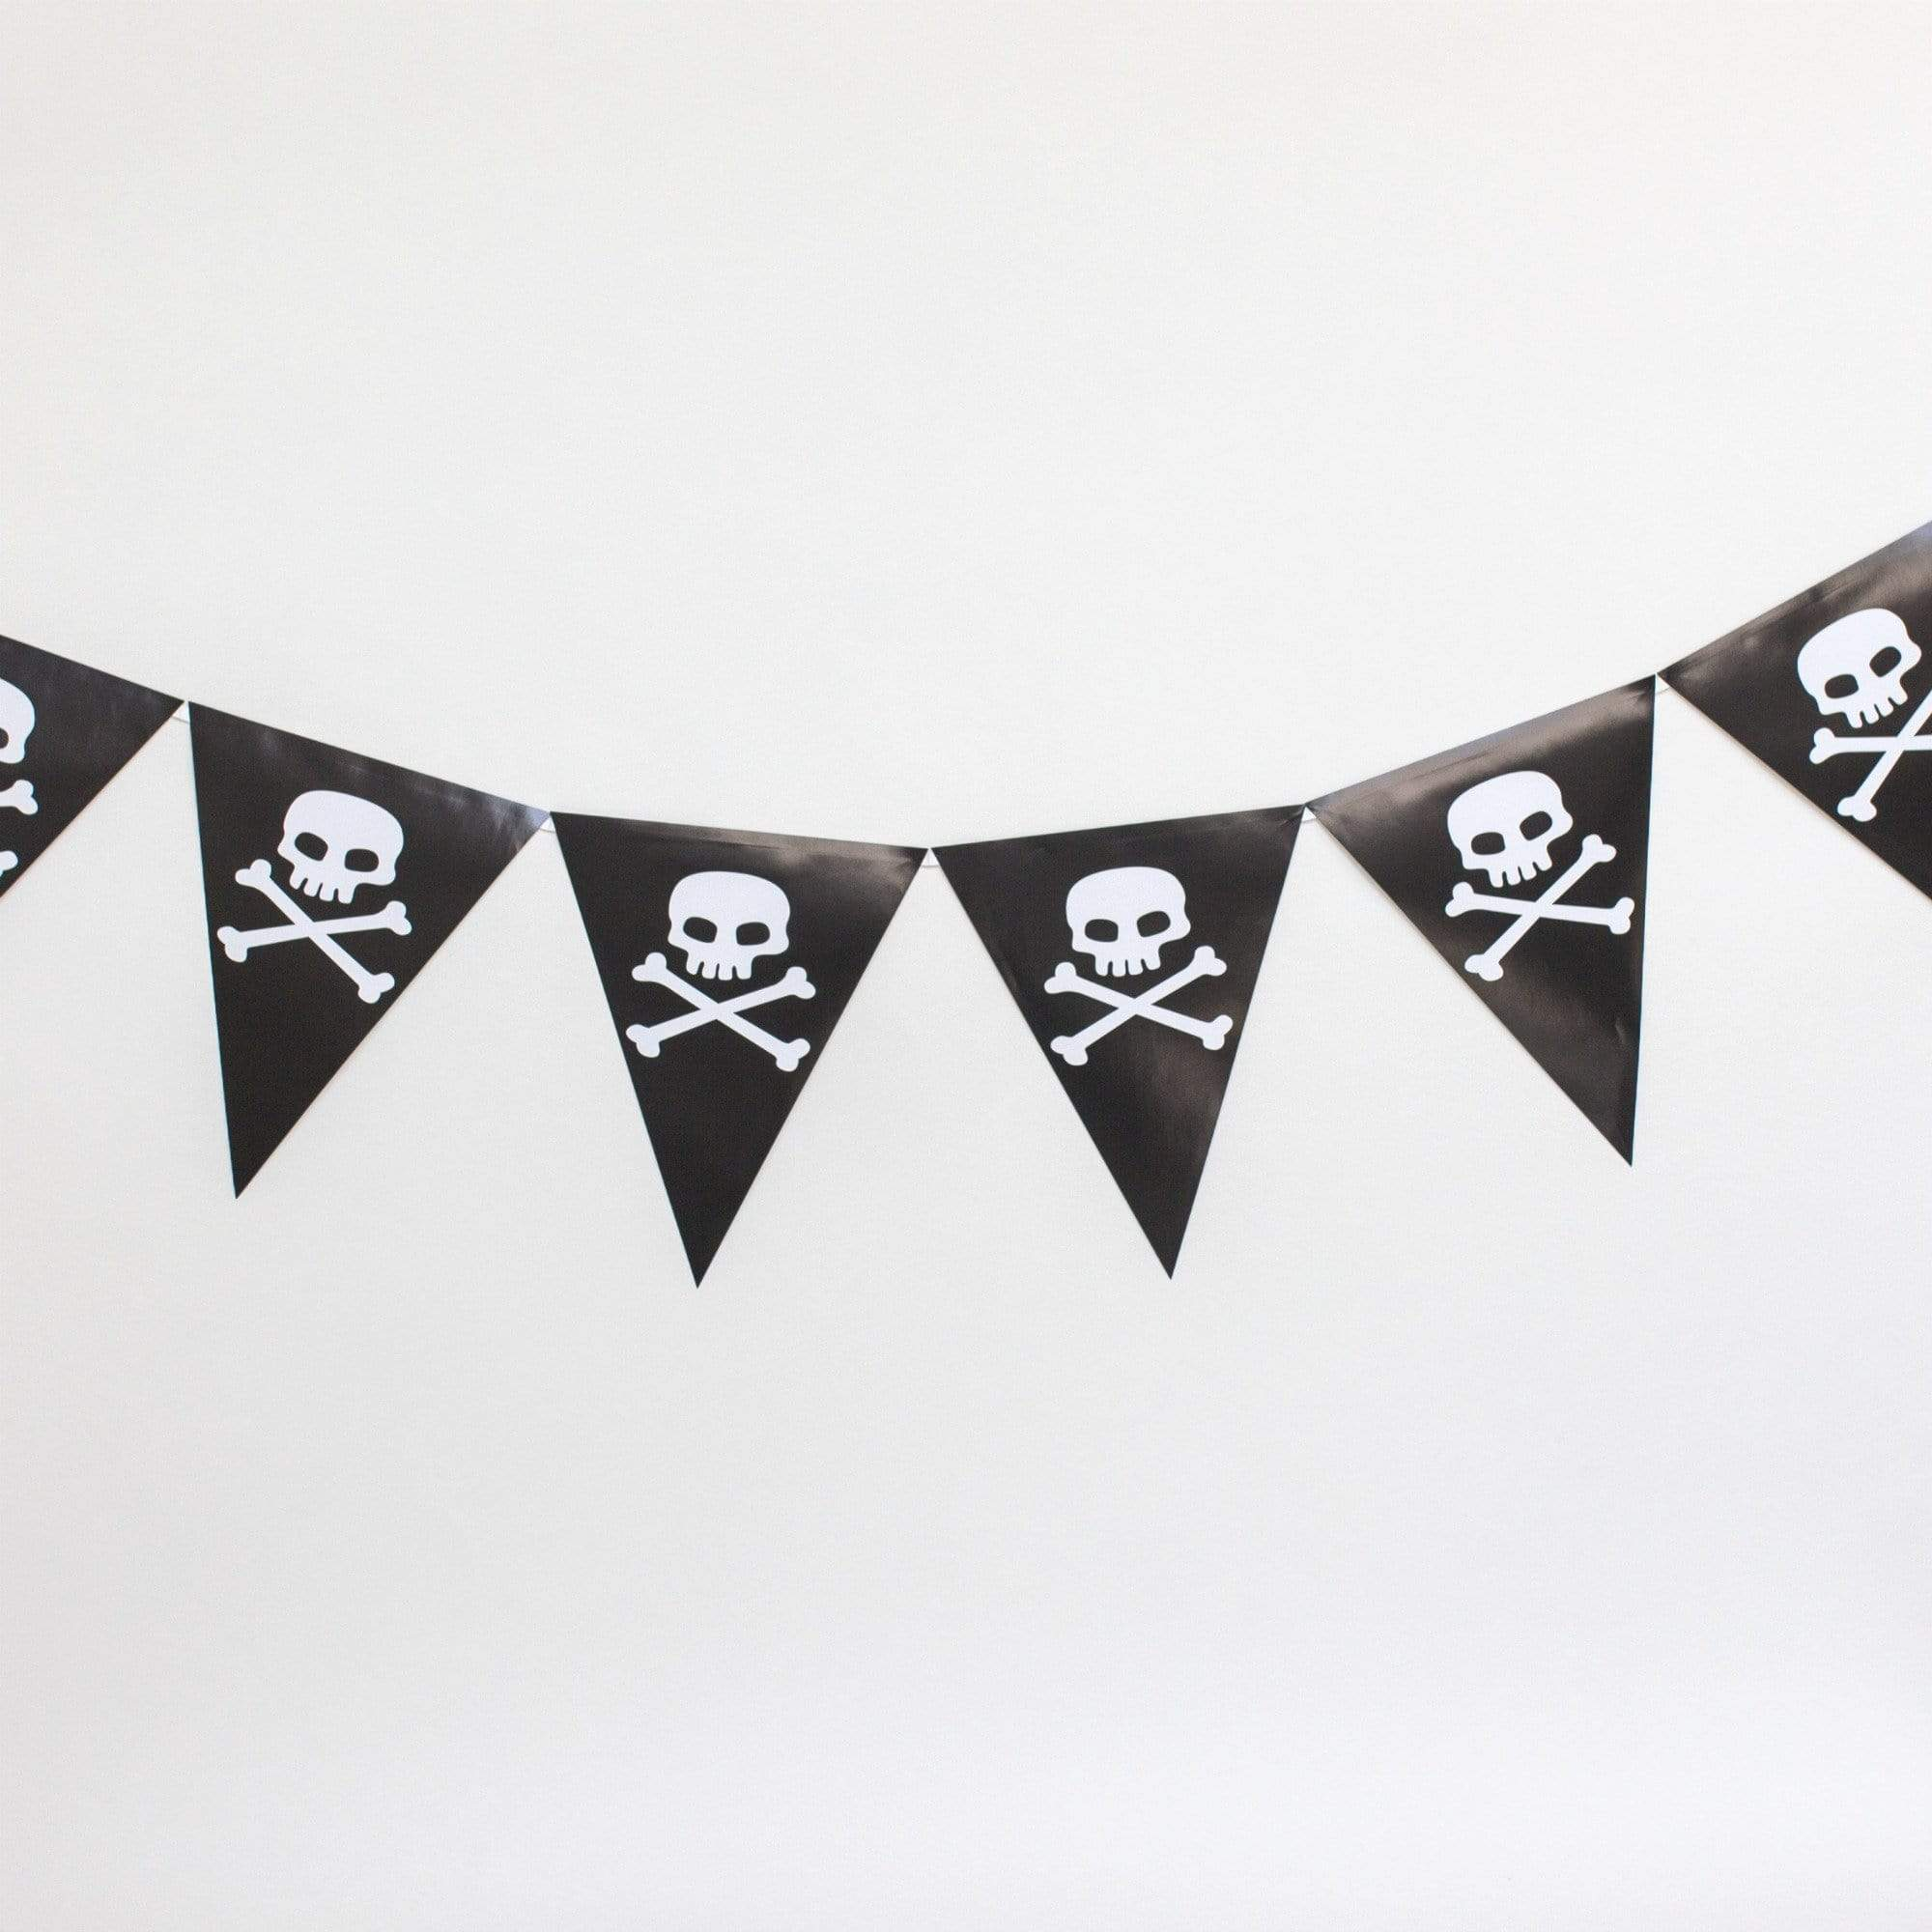 Pirate flag paper Bunting